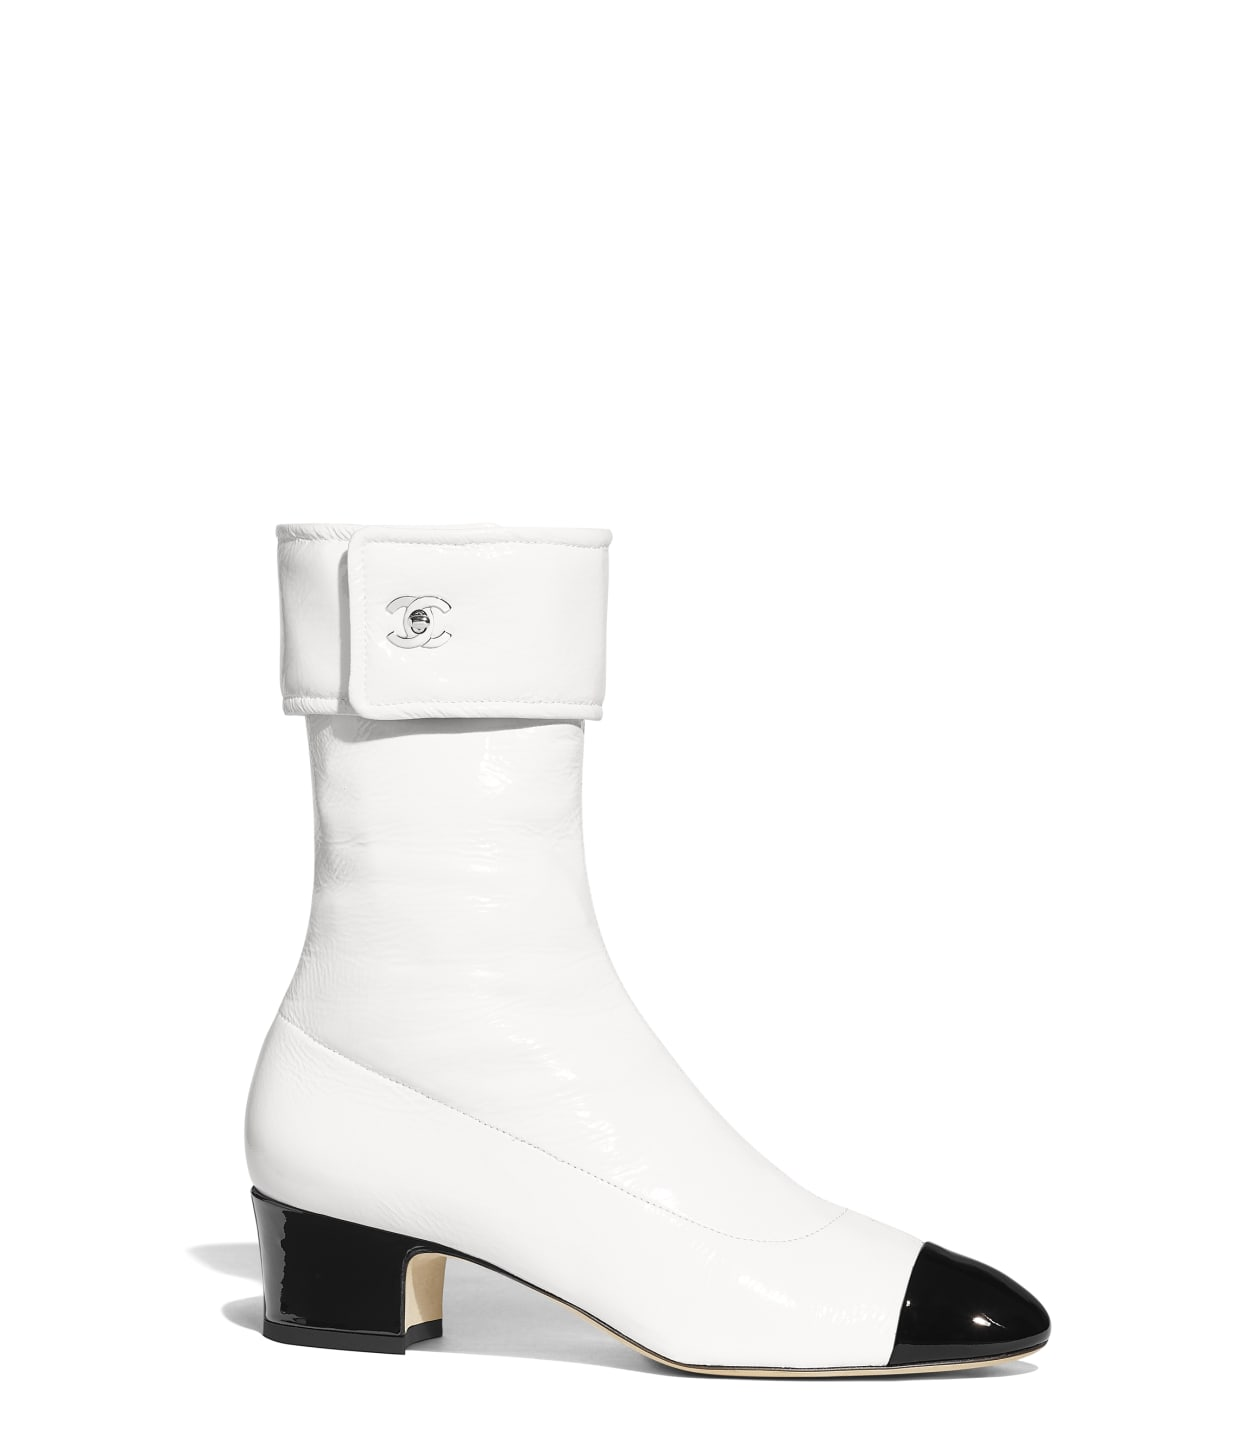 chanel allure homme sport boots uk